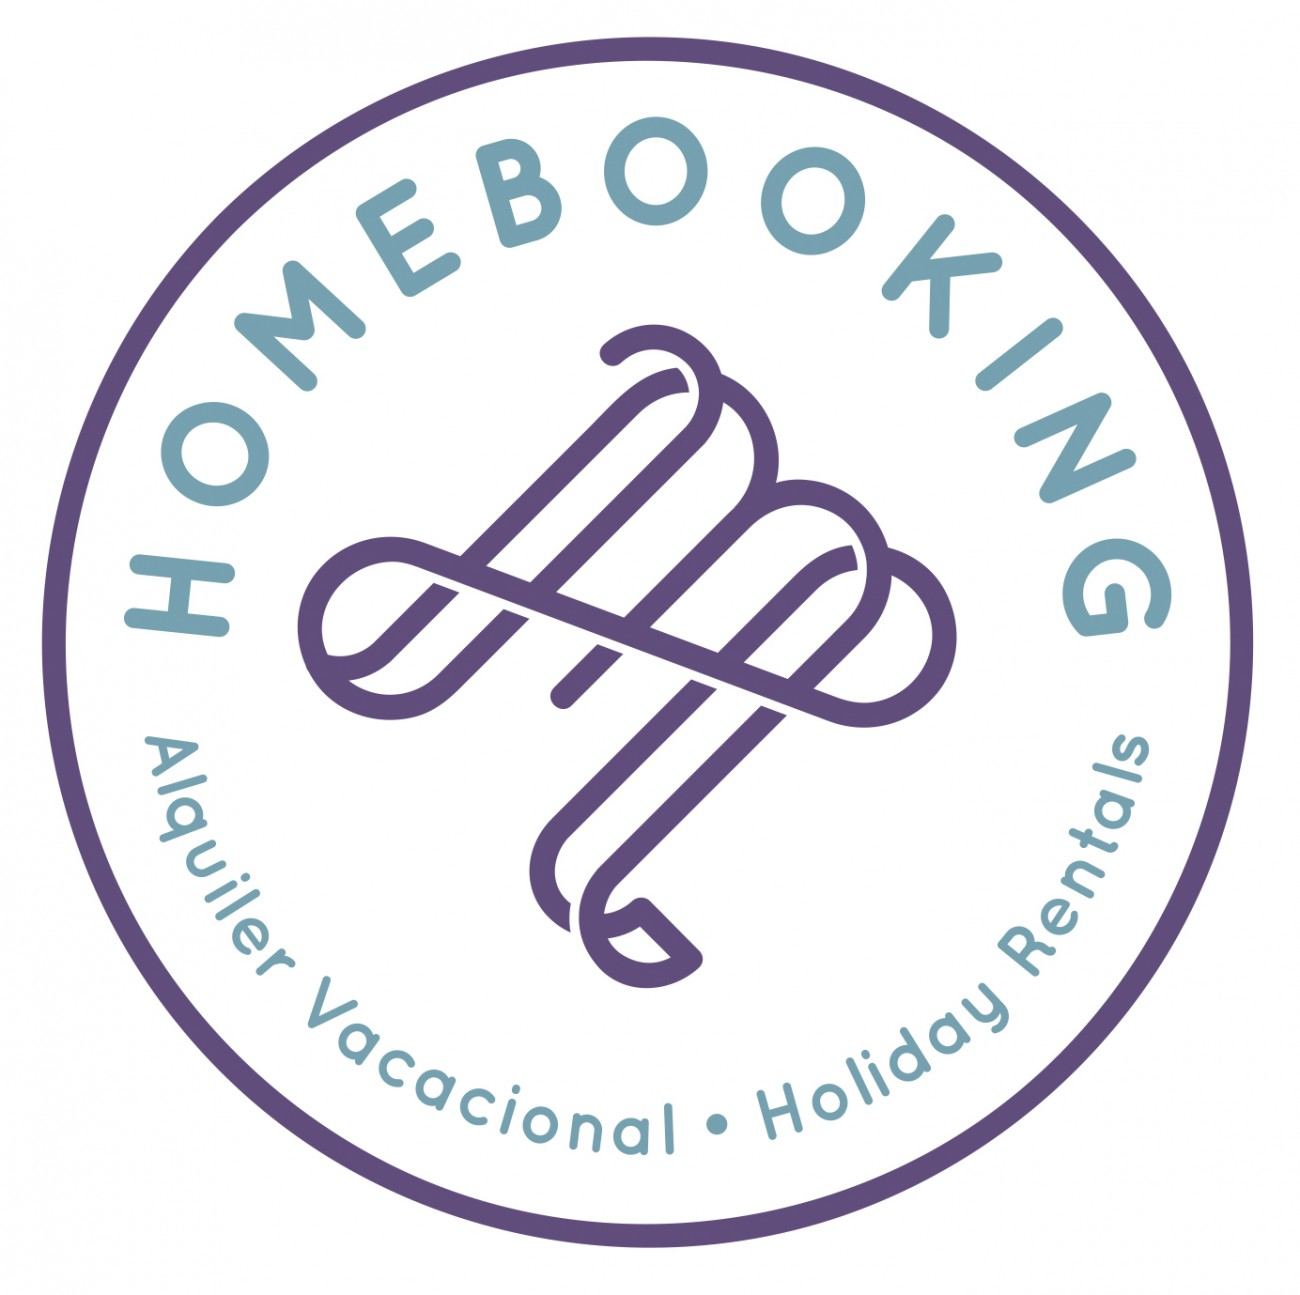 homebooking_logo_circulo